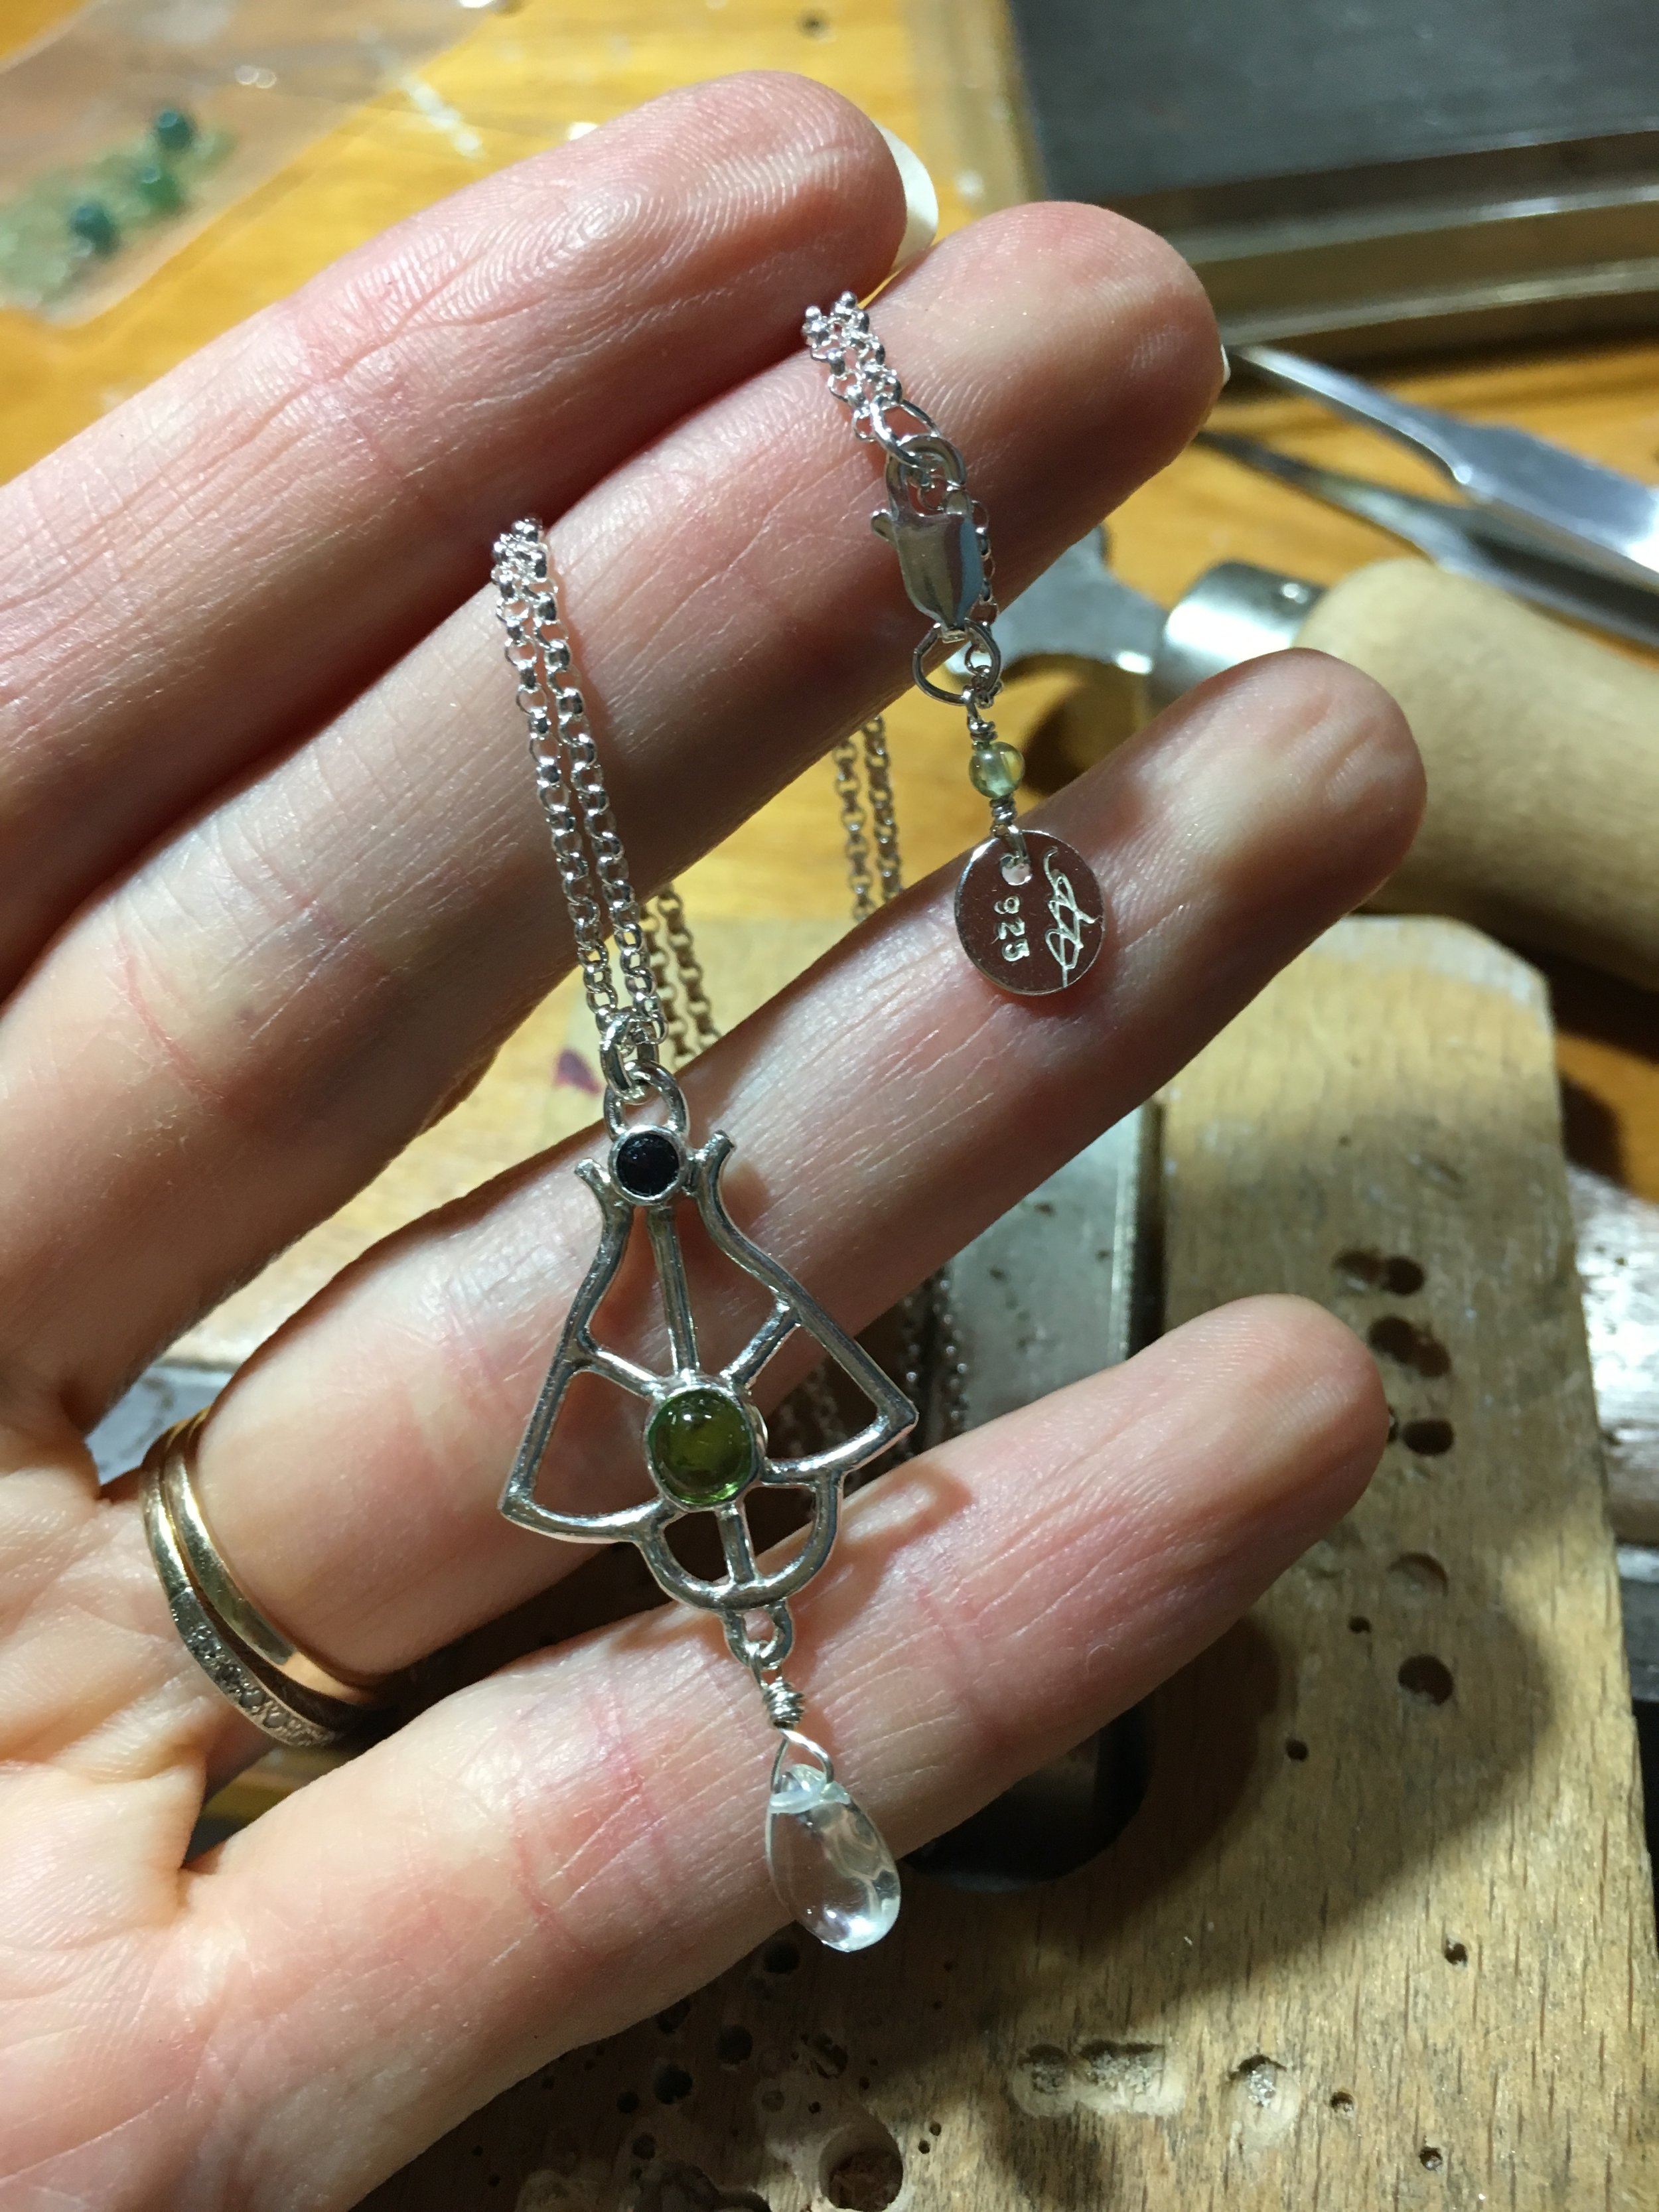 Completed pendant